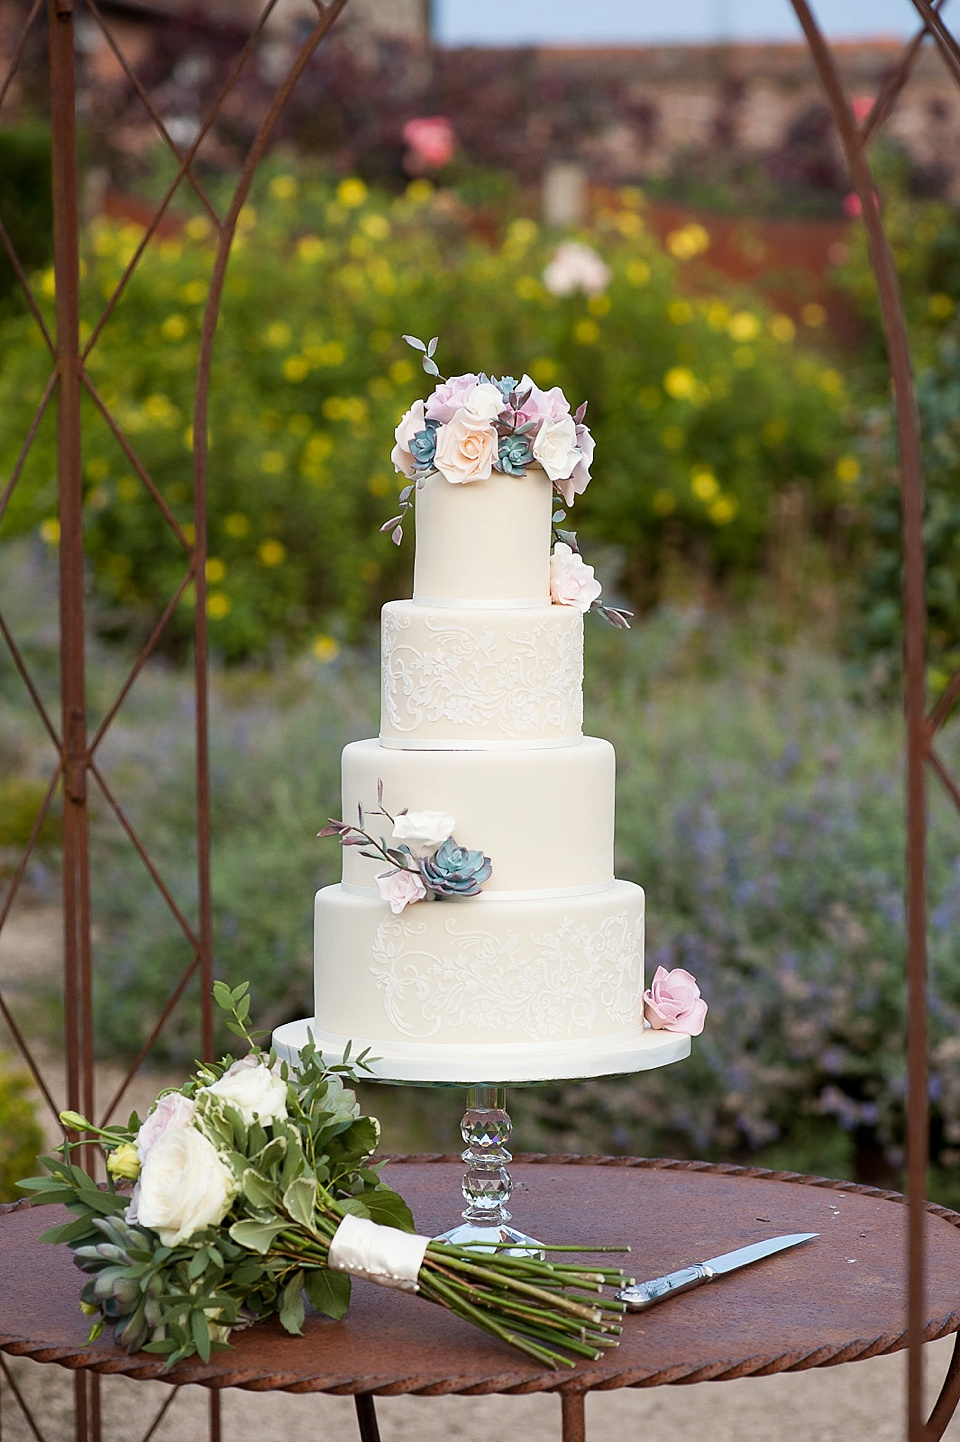 Cake by Mrs Robinson's Cakes and flowers by Blooms - English country garden wedding at the Walled Garden at Cowdray - Sussex wedding photographer © Fiona Kelly photography